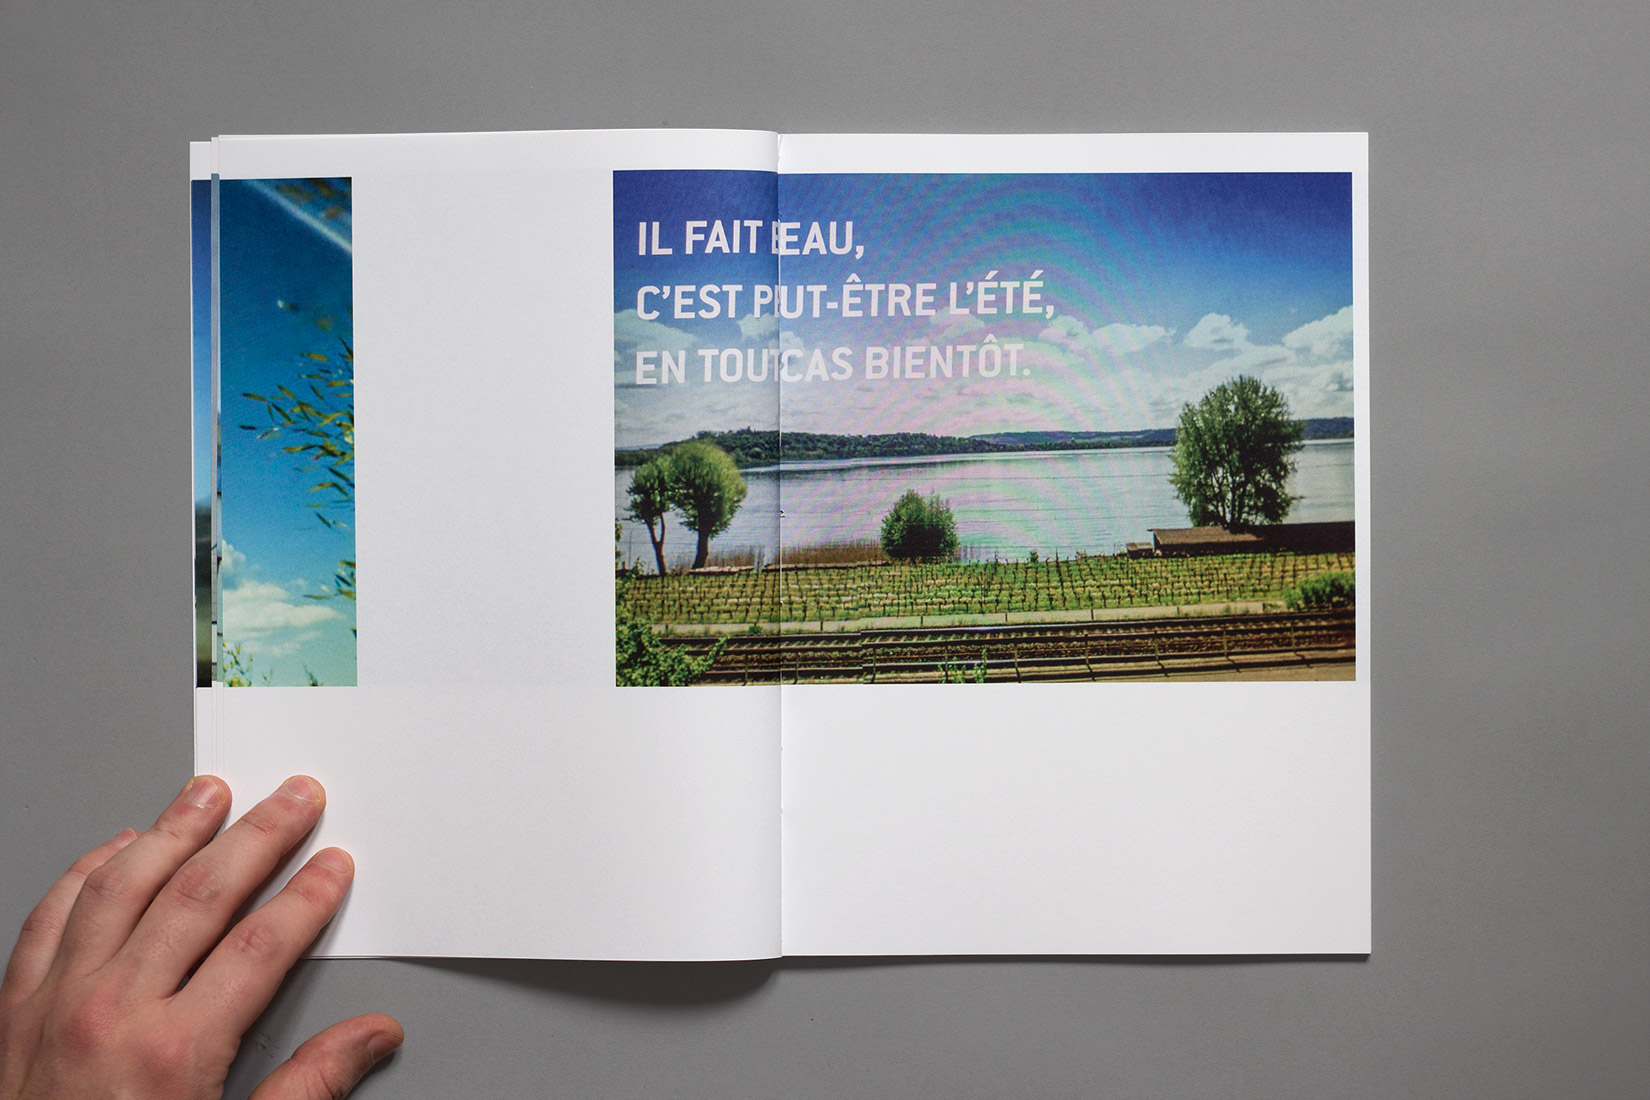 La Neuveville, book, Lac de Bienne, railways, vineyards, Google Street View, photography